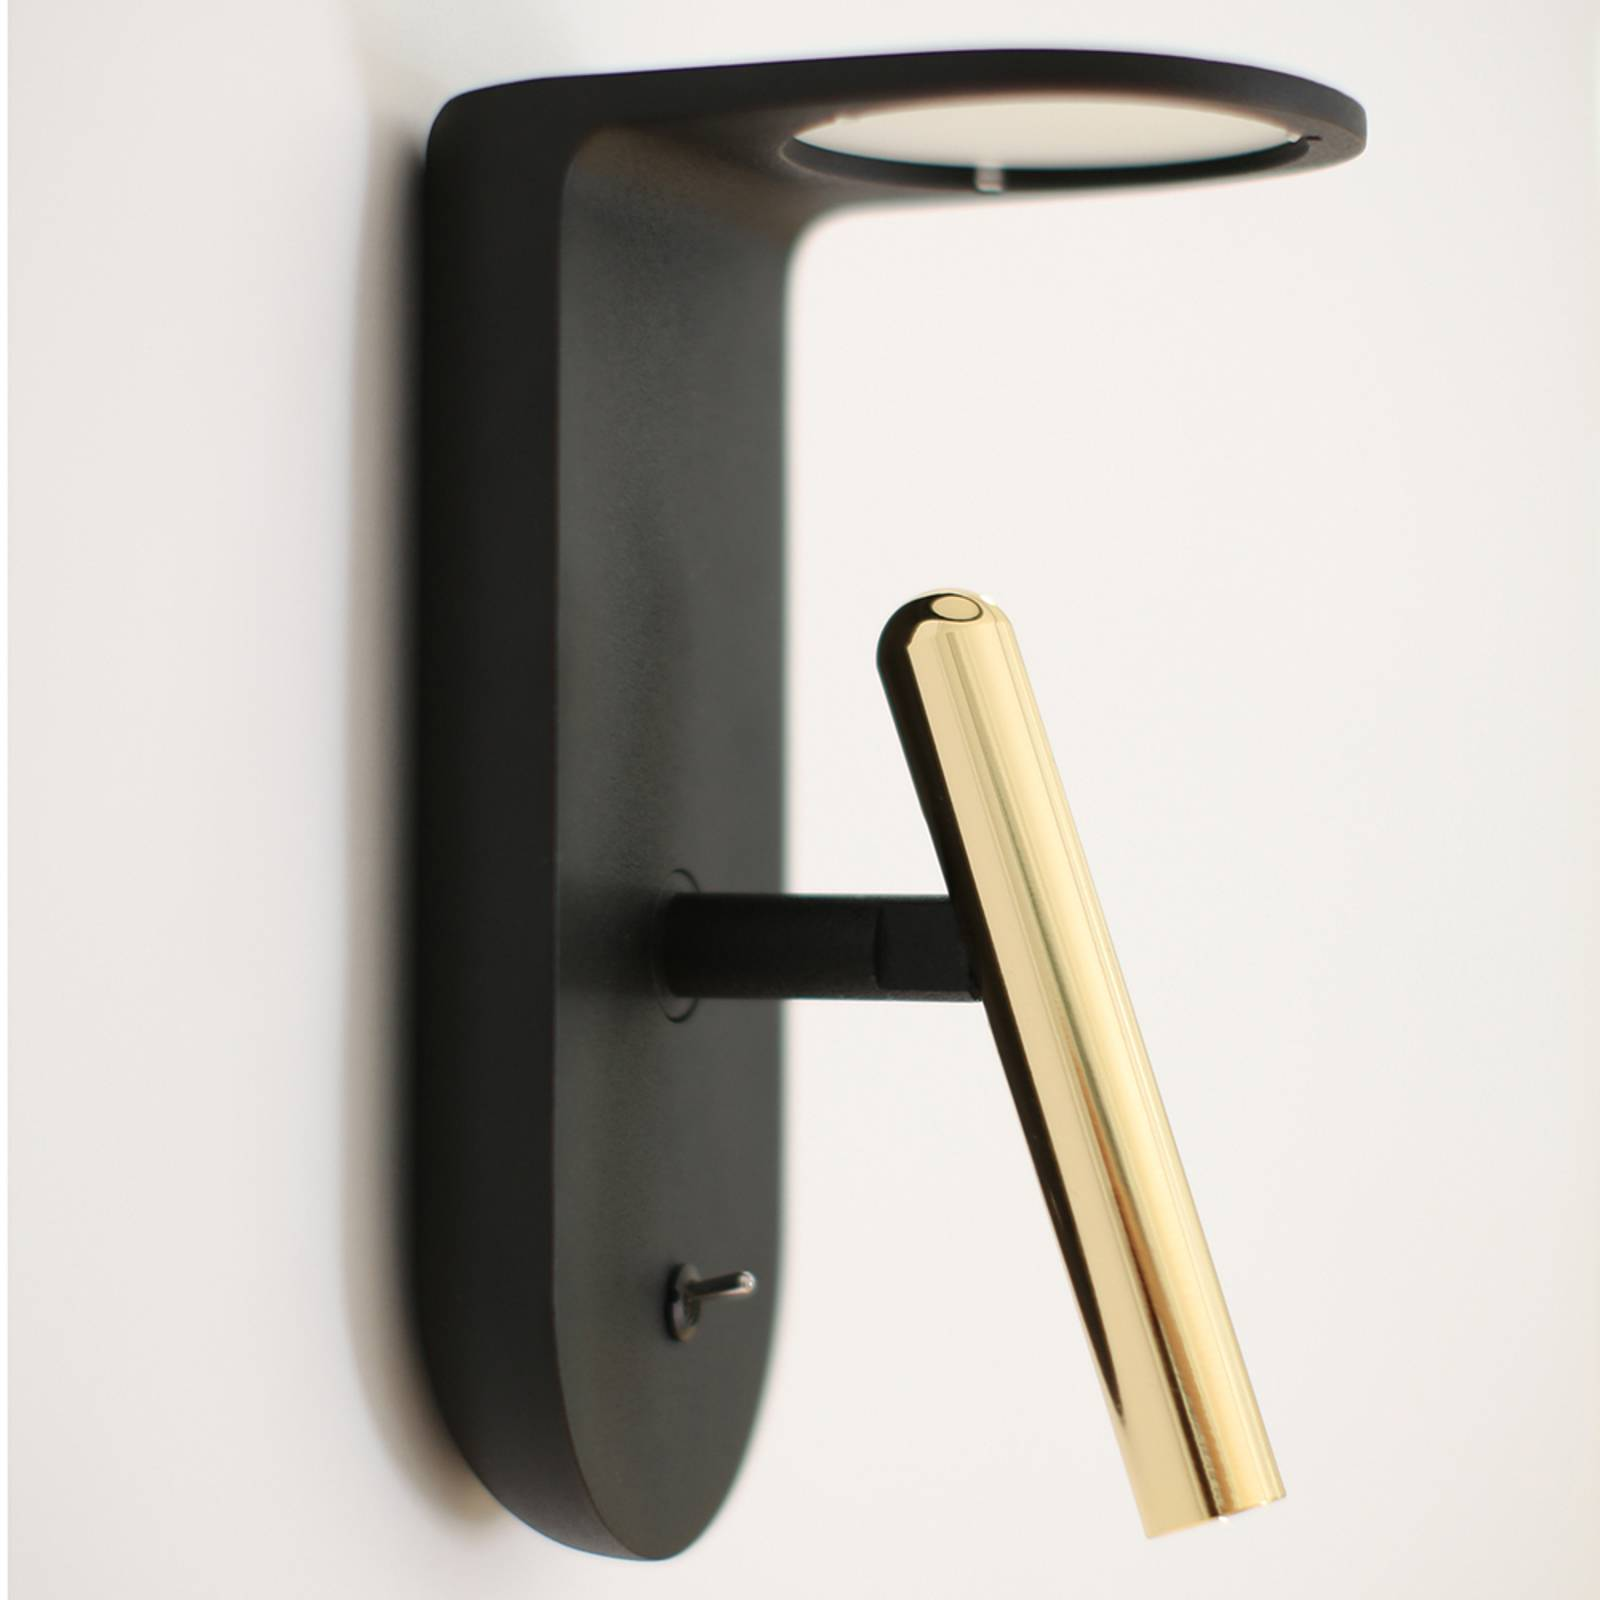 2Nights_W2 LED wall light in black-gold from Linea Light